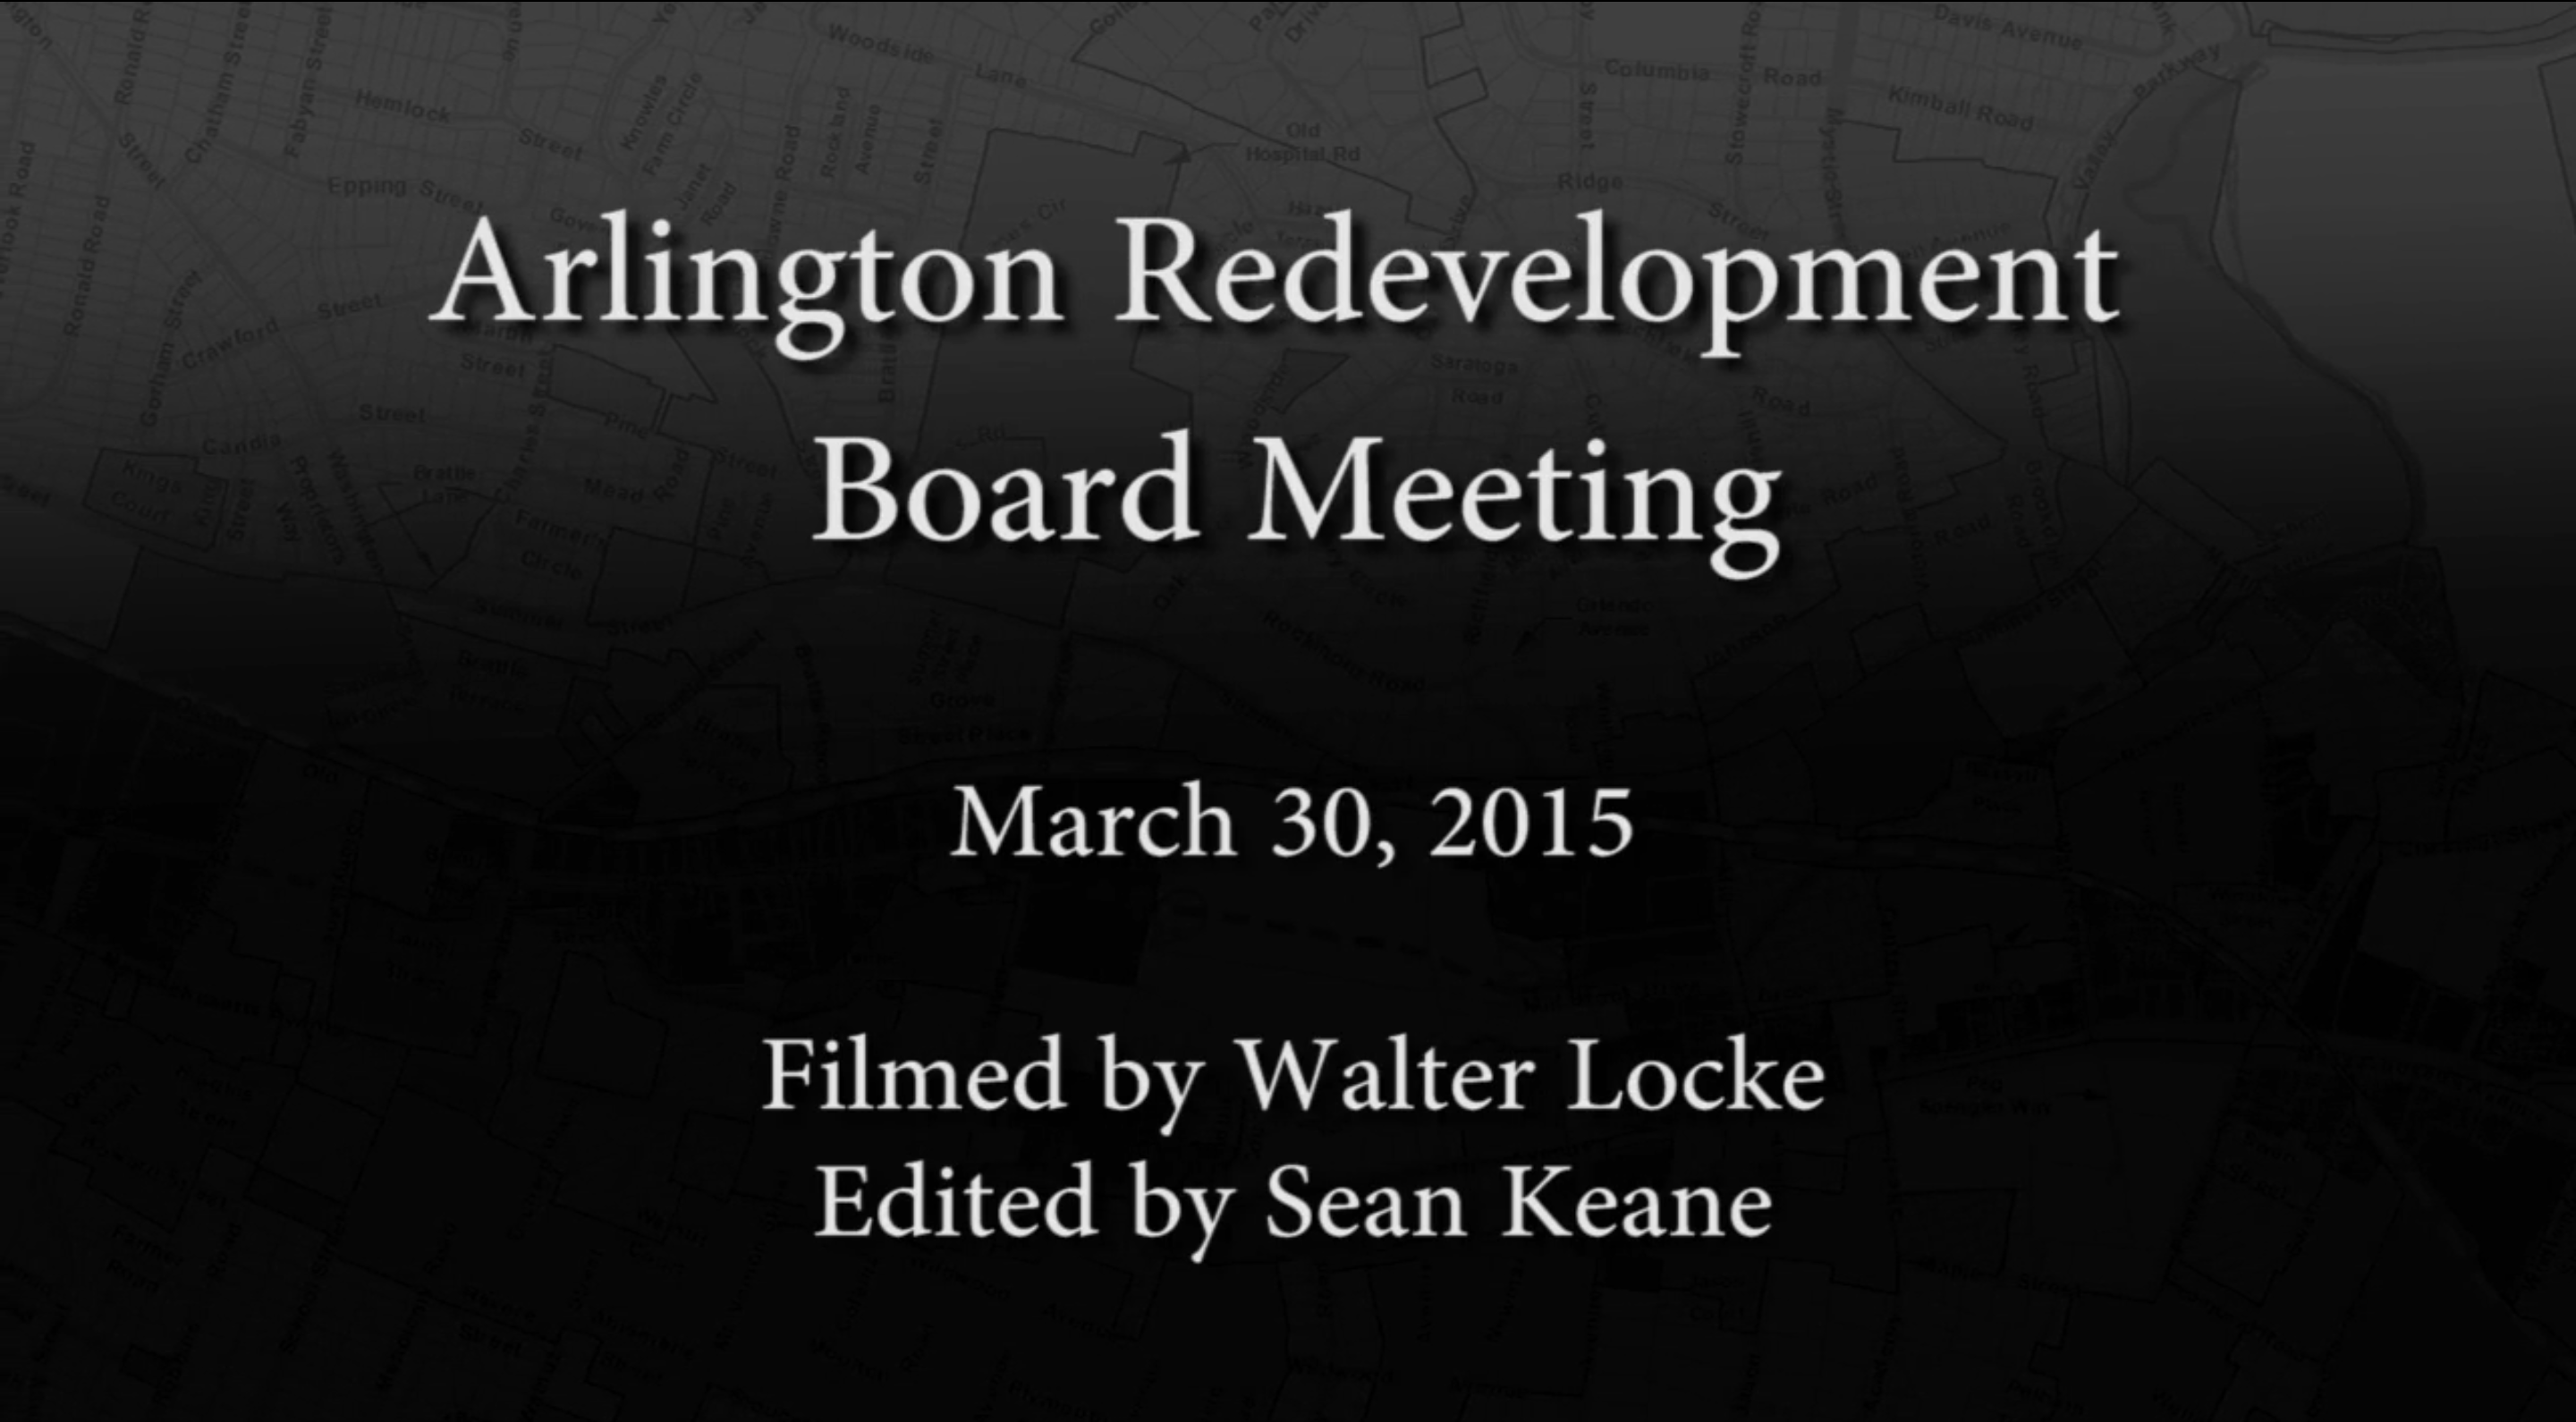 Redevelopment Board Meeting – March 30, 2015